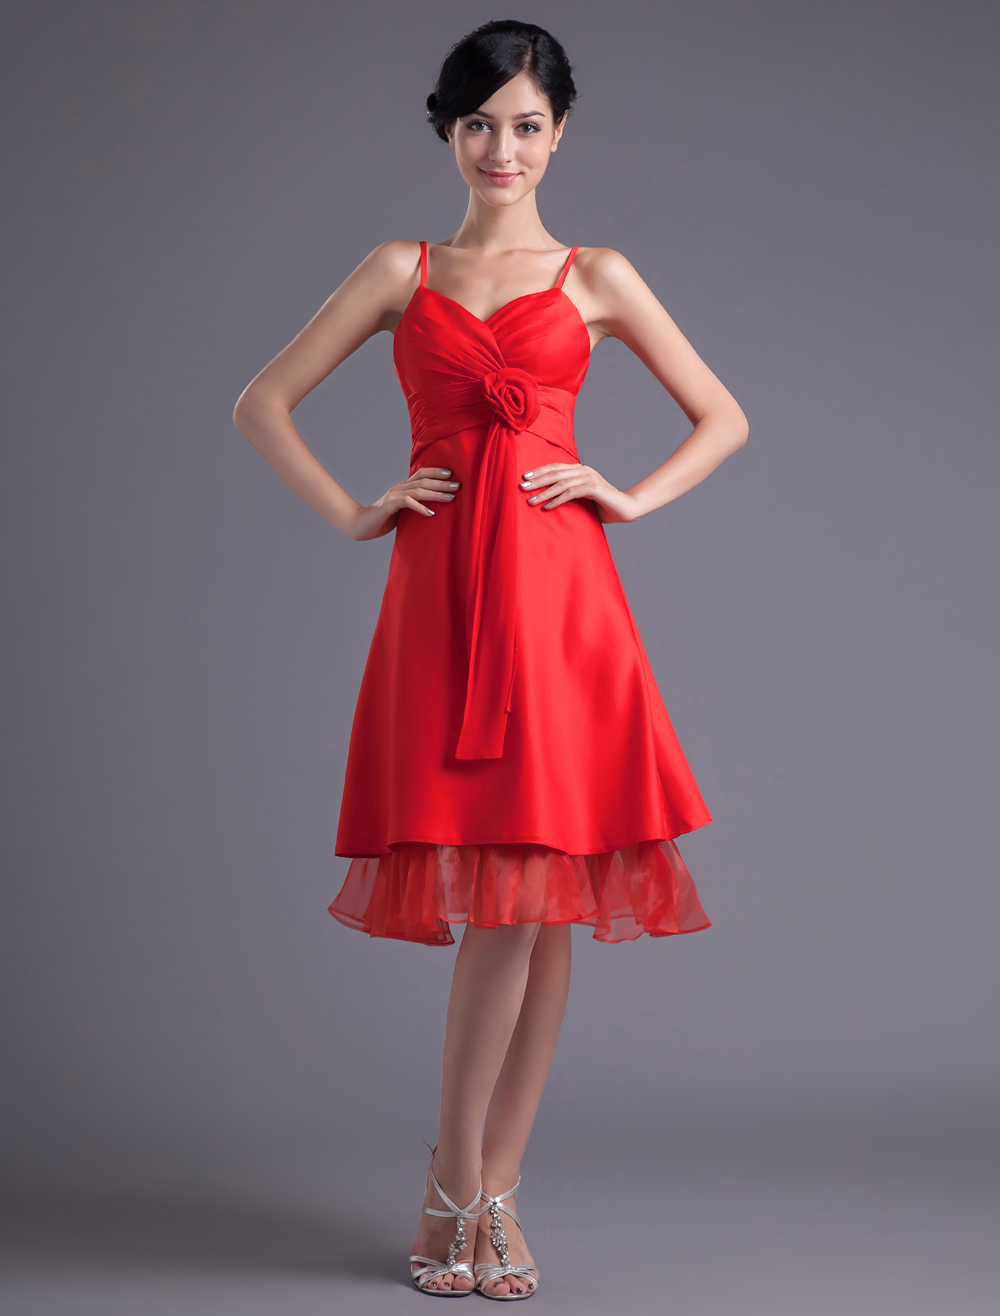 A-line Red Satin Floral Straps Knee-Length Fashion Bridesmaid Dress